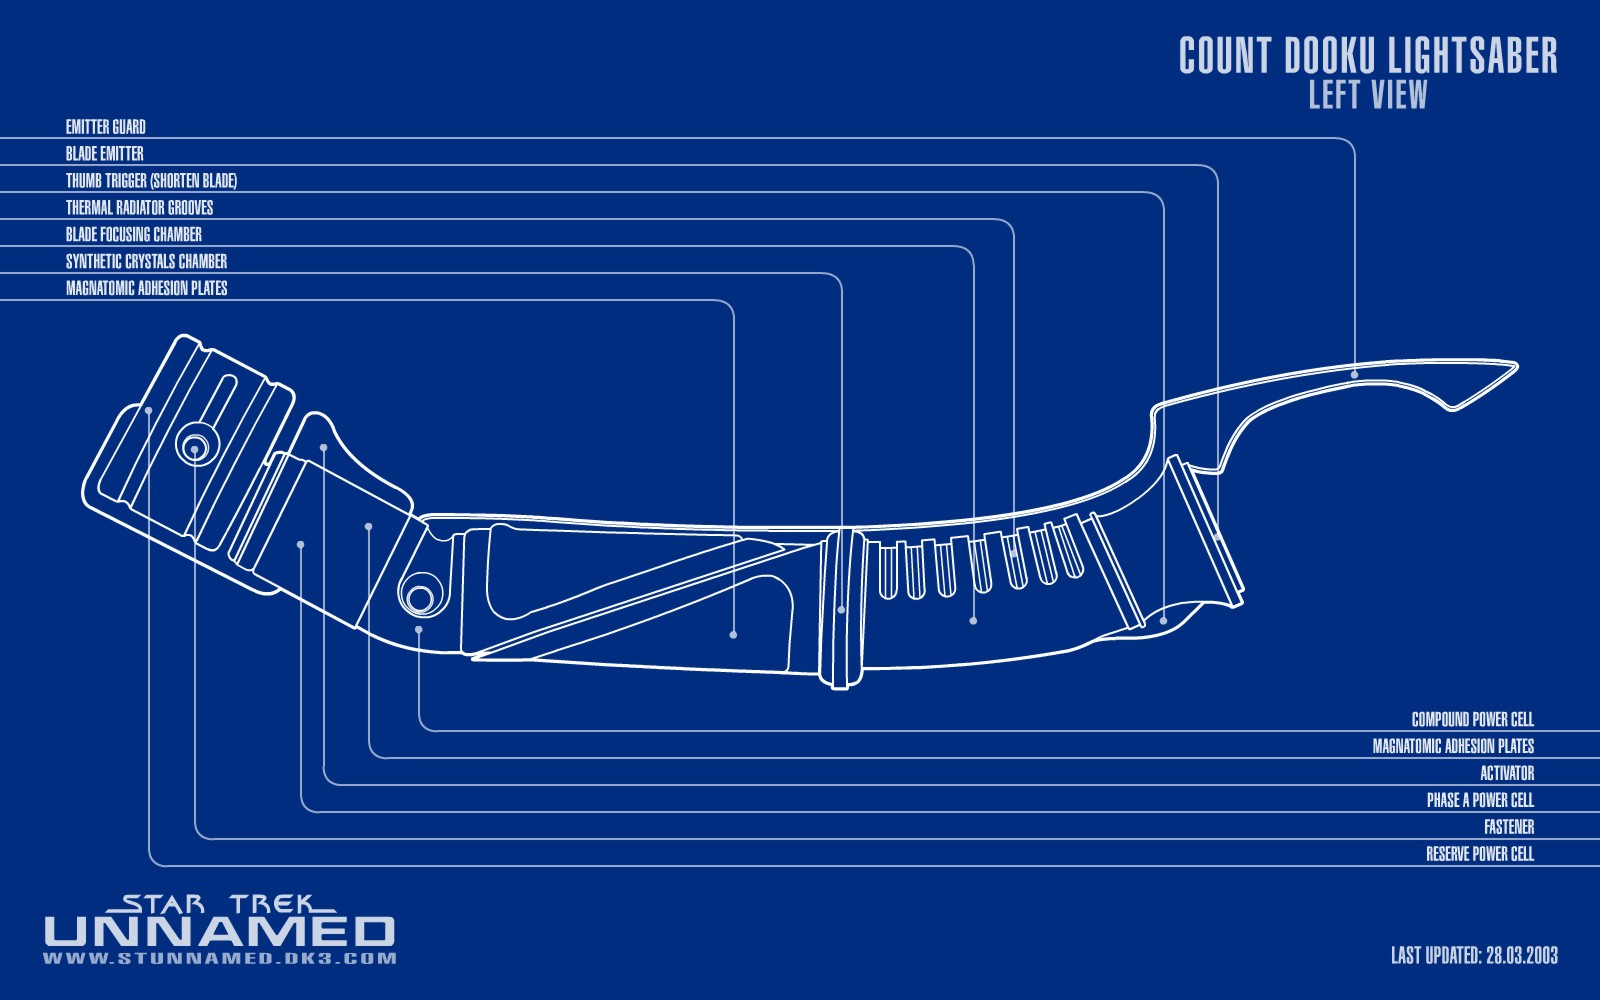 Count Dooku Lightsaber Schematic Left View by NapalmKing 2D ... on